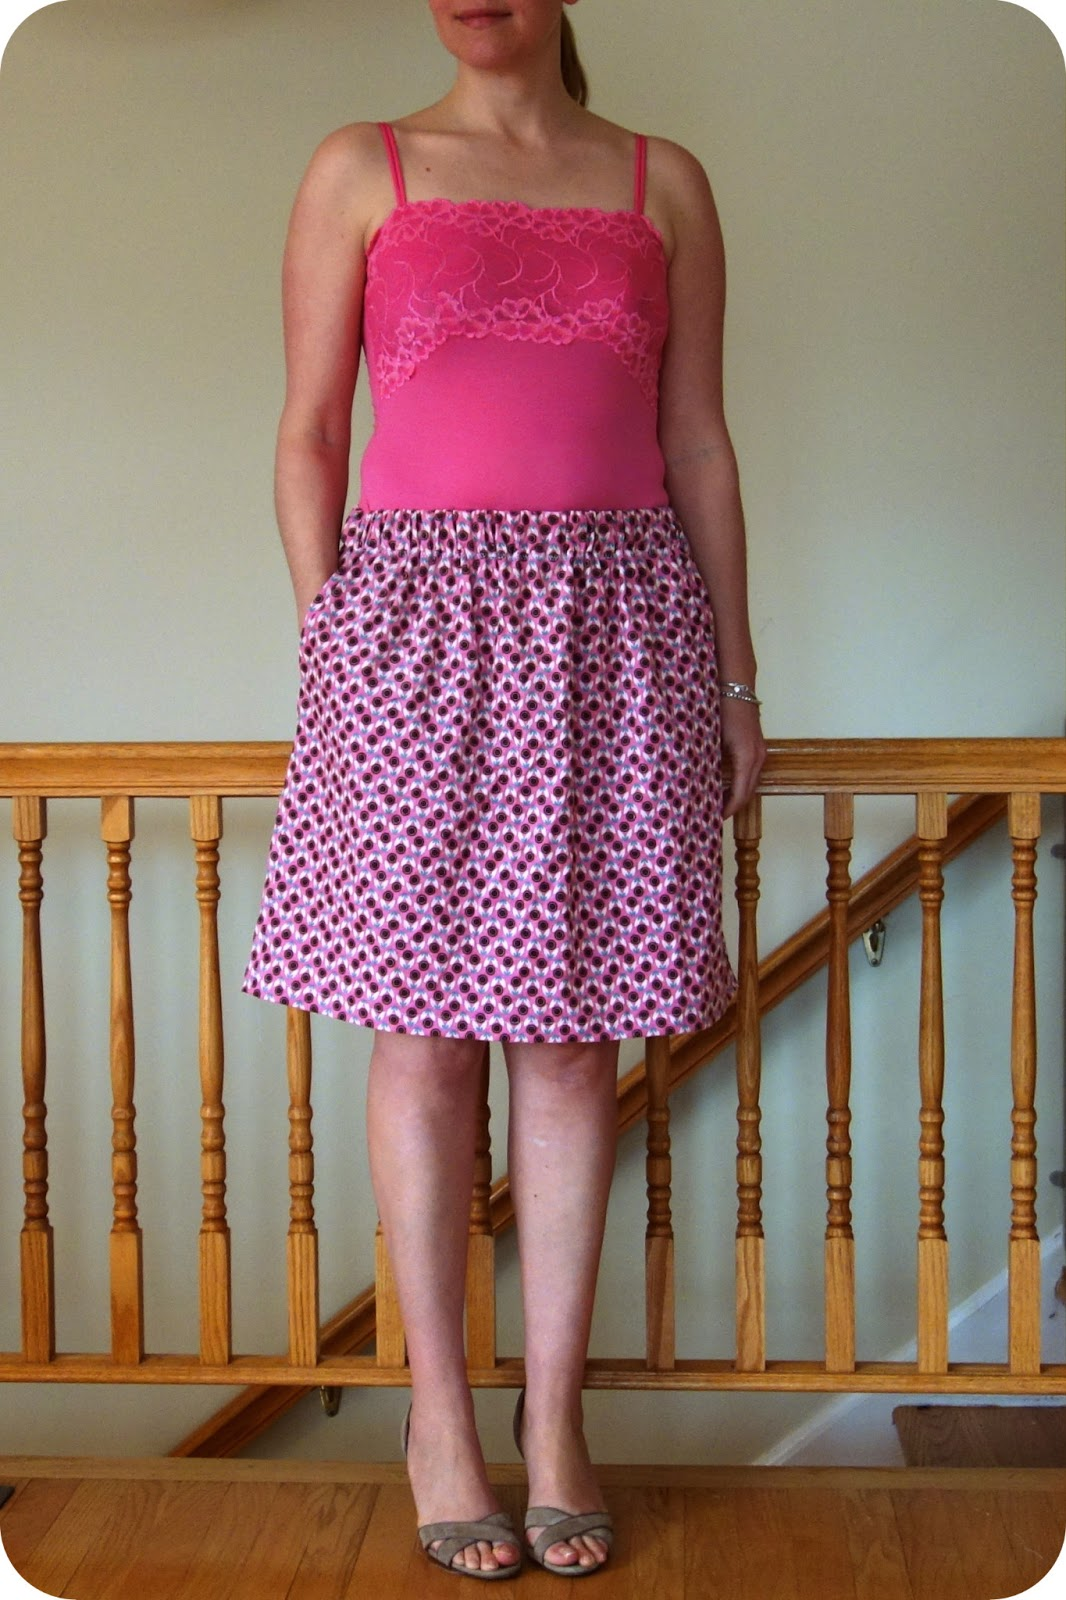 35114c08fa Here I have worn the skirt longer and on my hips. The elastic is sized for my  waist measurement, but there is more than enough give to wear it lower.